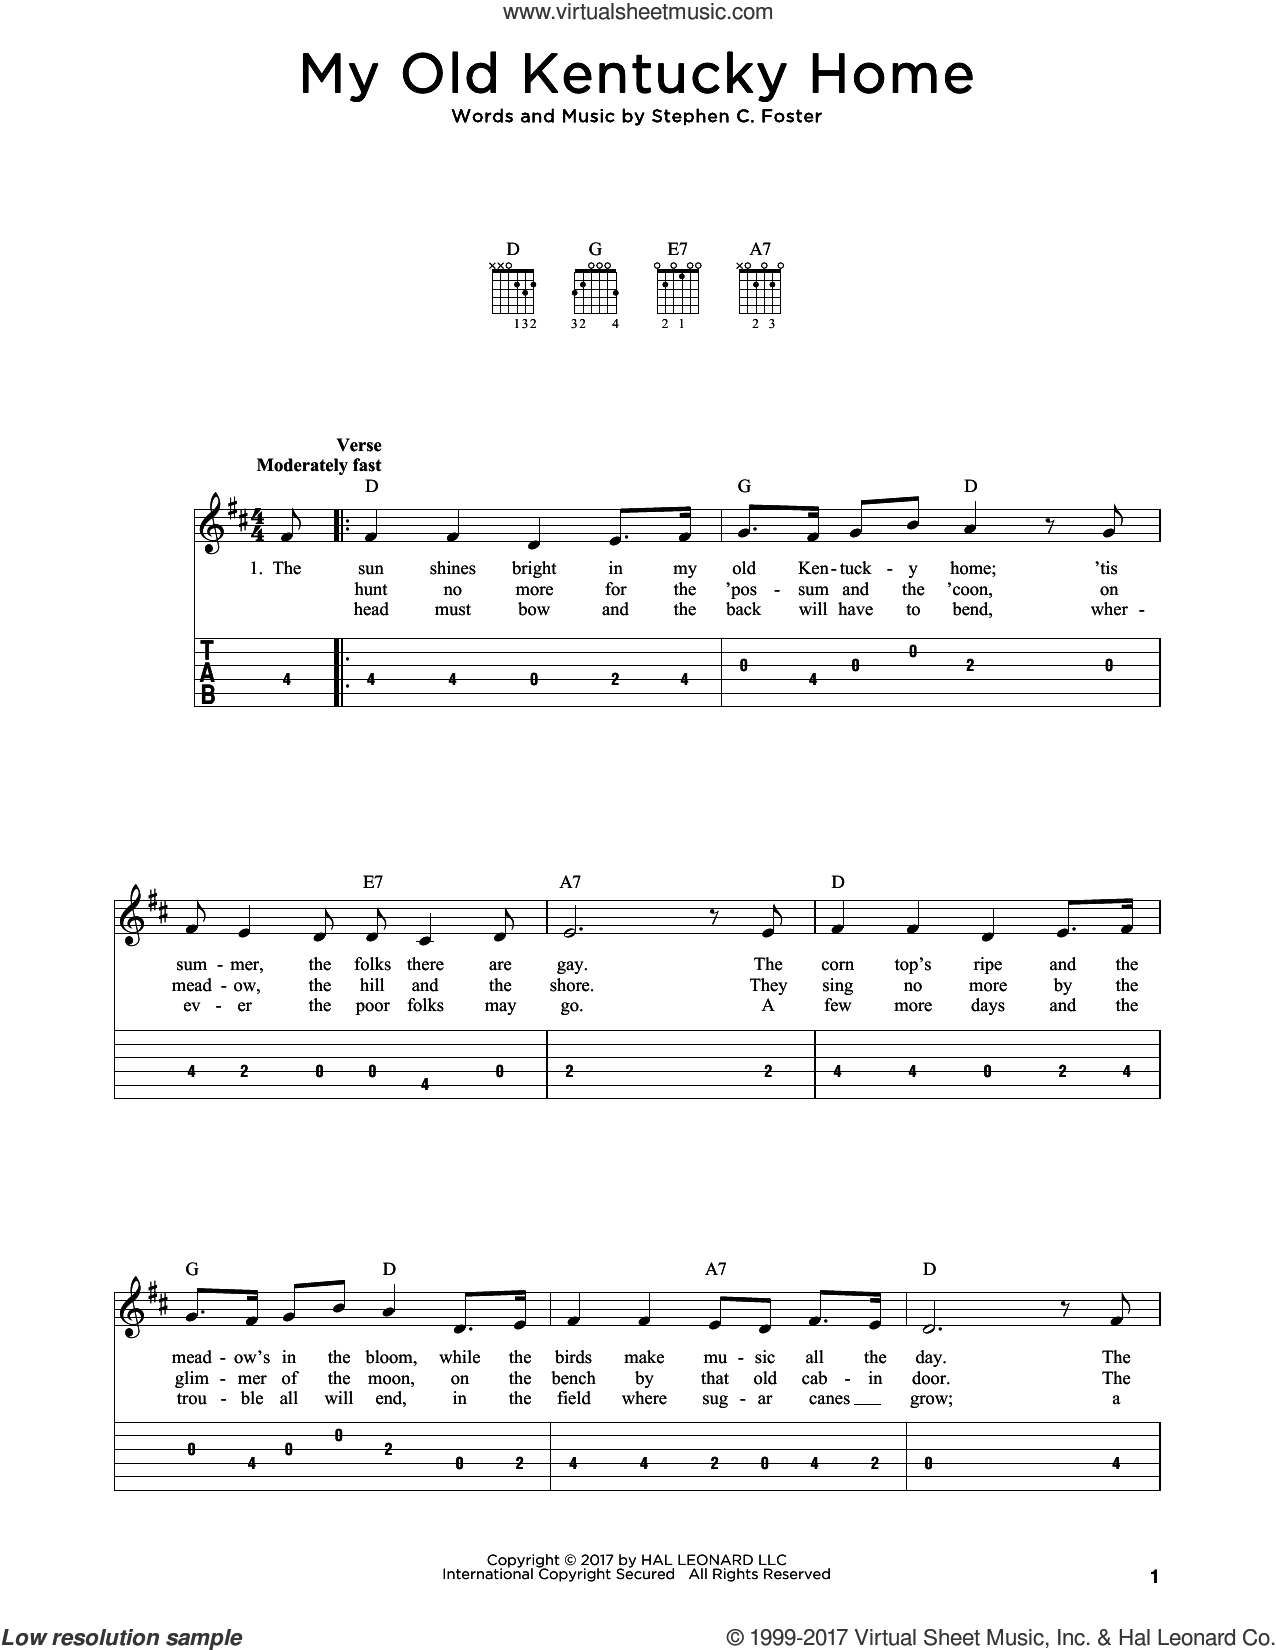 My Old Kentucky Home sheet music for guitar solo by Stephen Foster, intermediate skill level